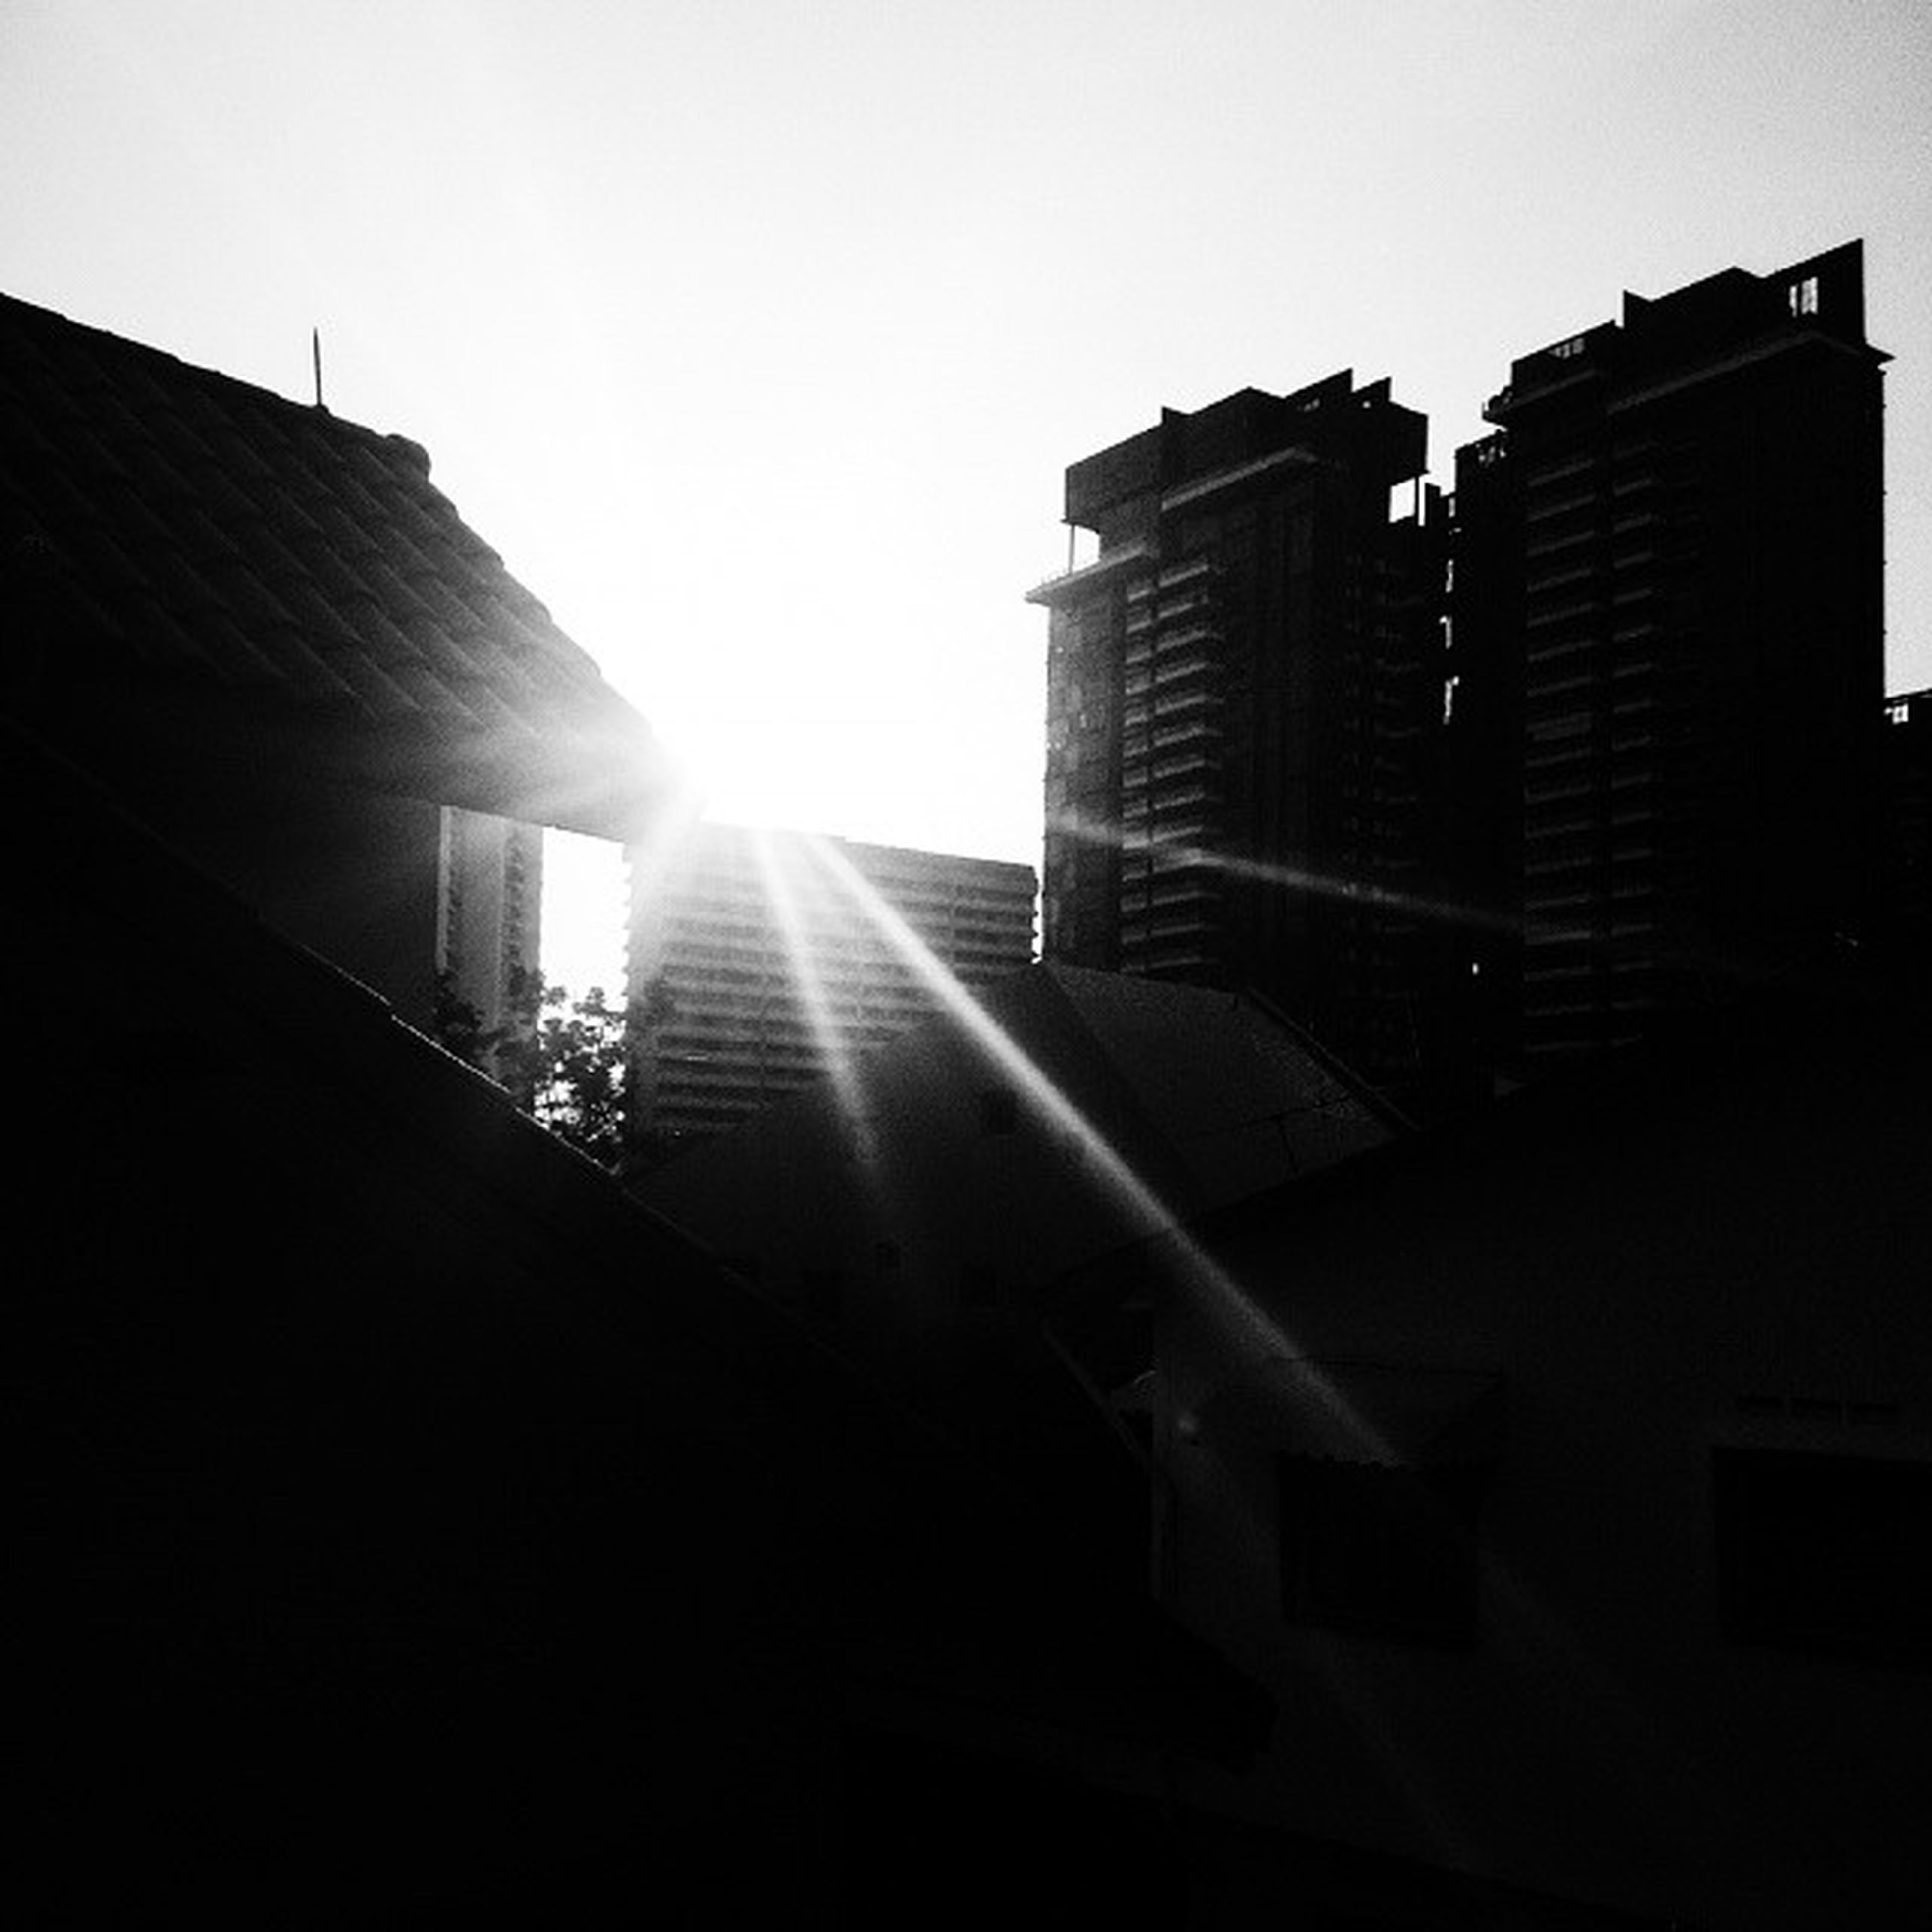 building exterior, architecture, built structure, sun, sunbeam, sunlight, building, clear sky, lens flare, city, low angle view, residential building, sky, residential structure, silhouette, sunny, no people, outdoors, day, sunset